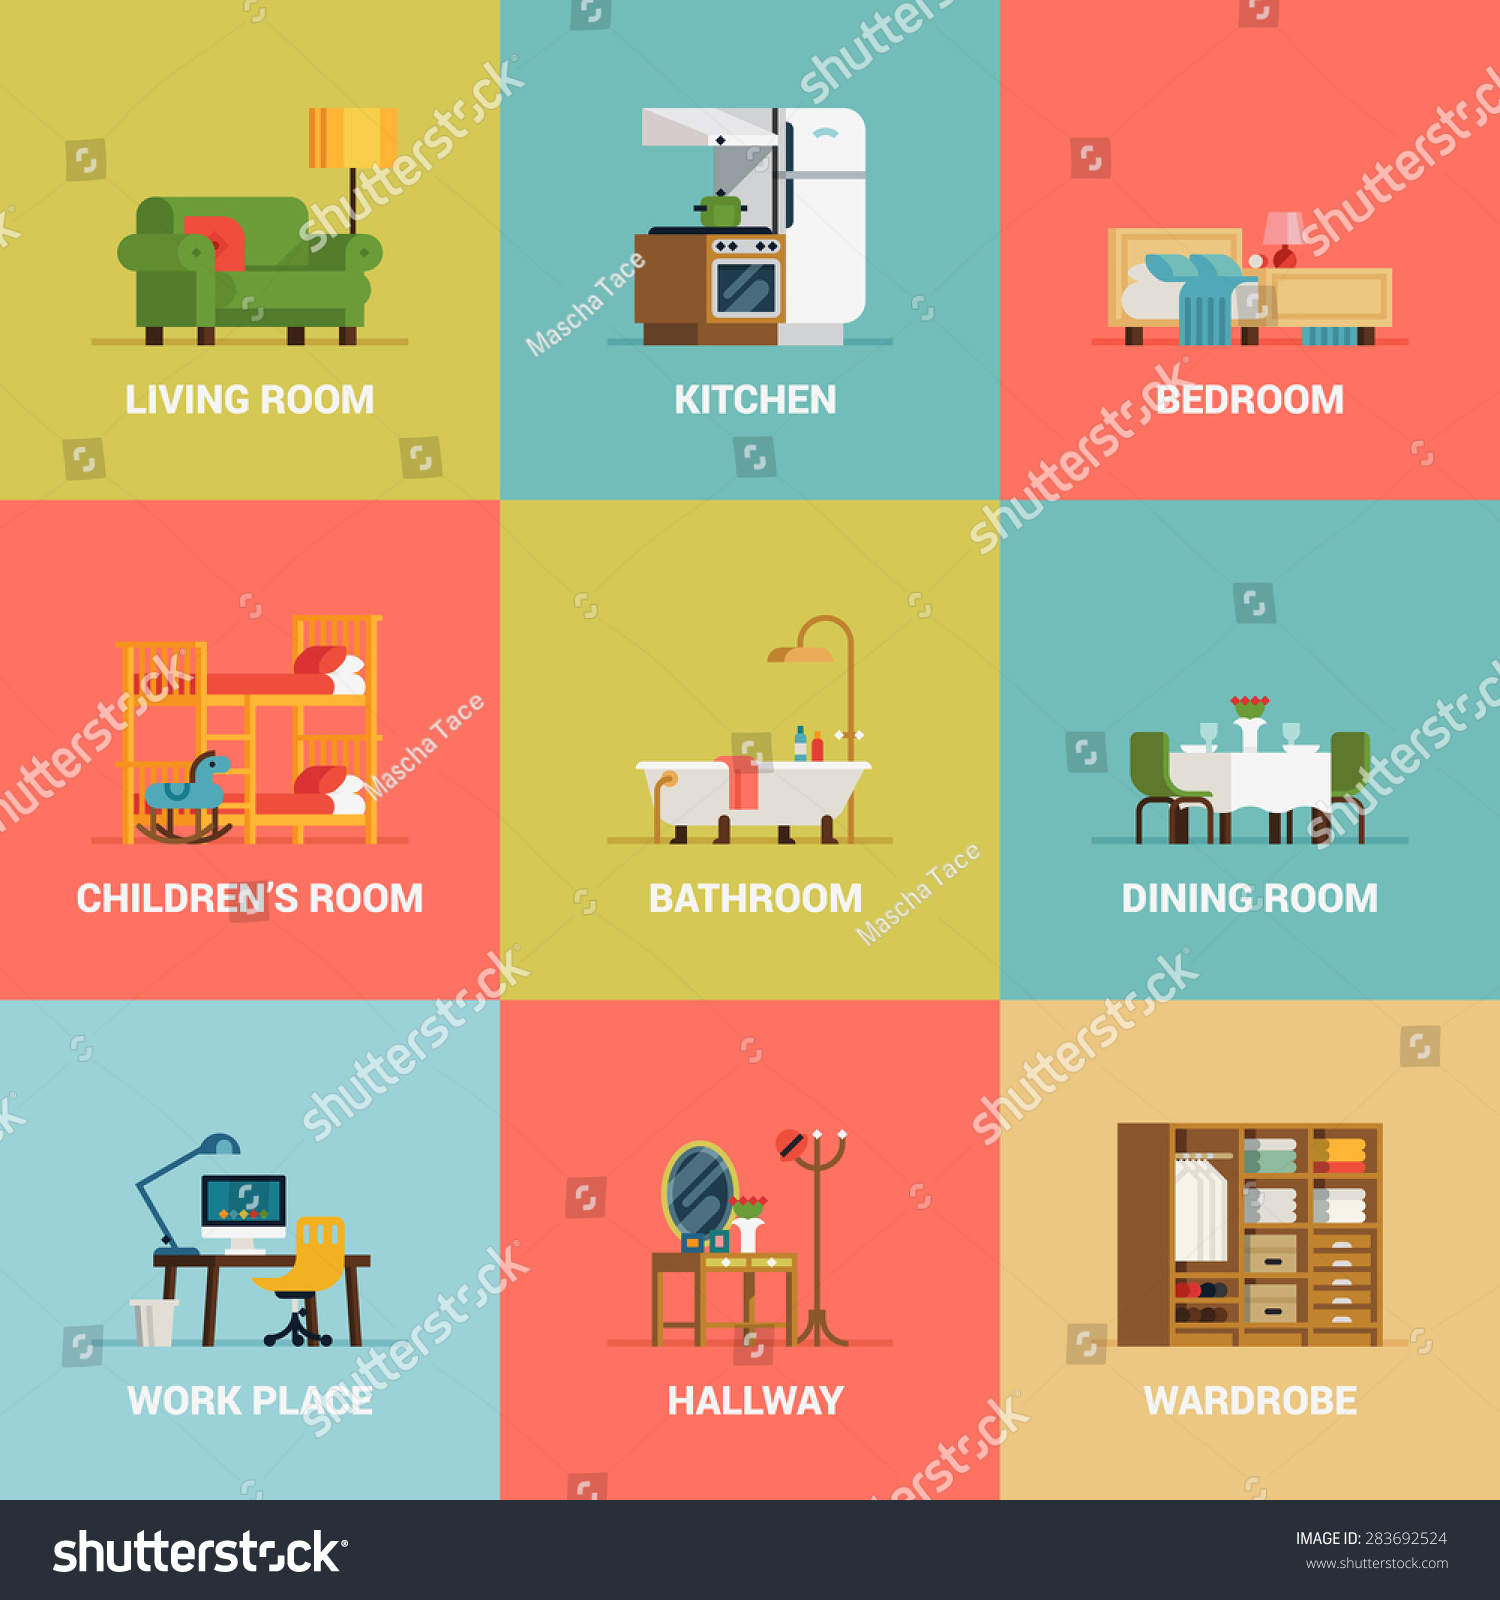 Set of lovely and colorful vector interior design room types icons in ...: www.shutterstock.com/th/pic-283692524/stock-vector-set-of-lovely...